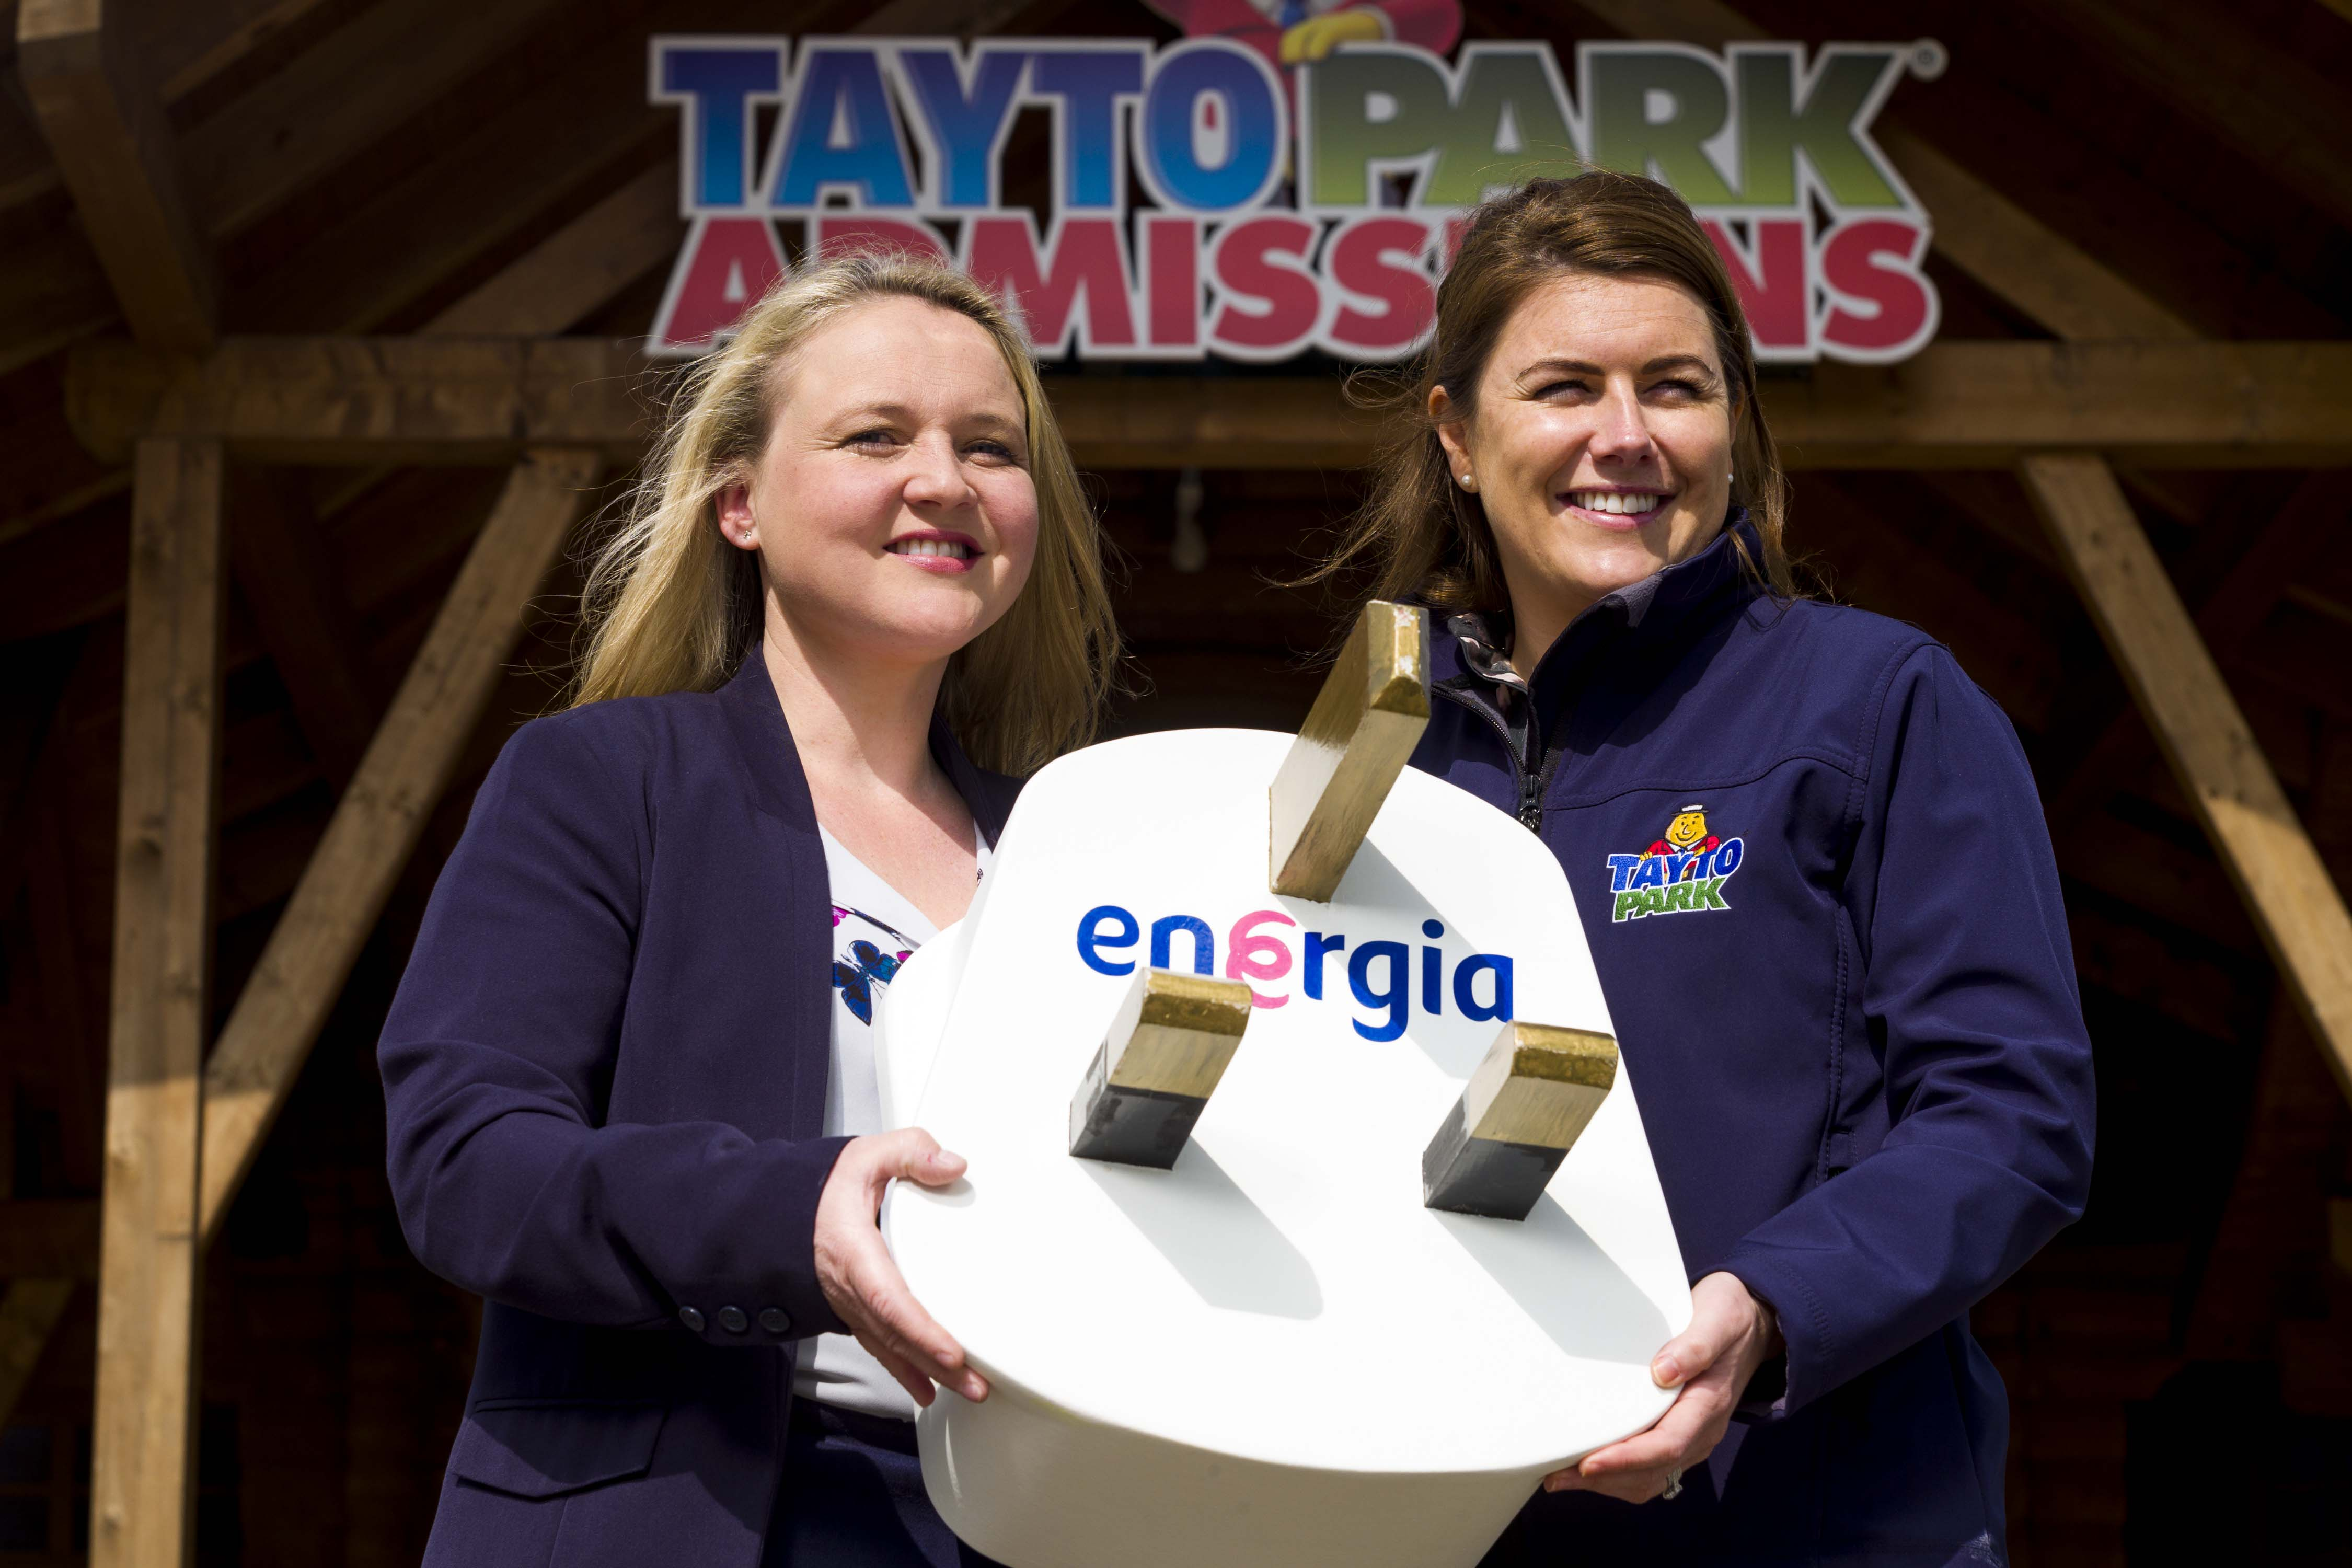 Energia crunch the numbers and serve up tasty energy prices to Tayto Park in 2.6GW new electricity d